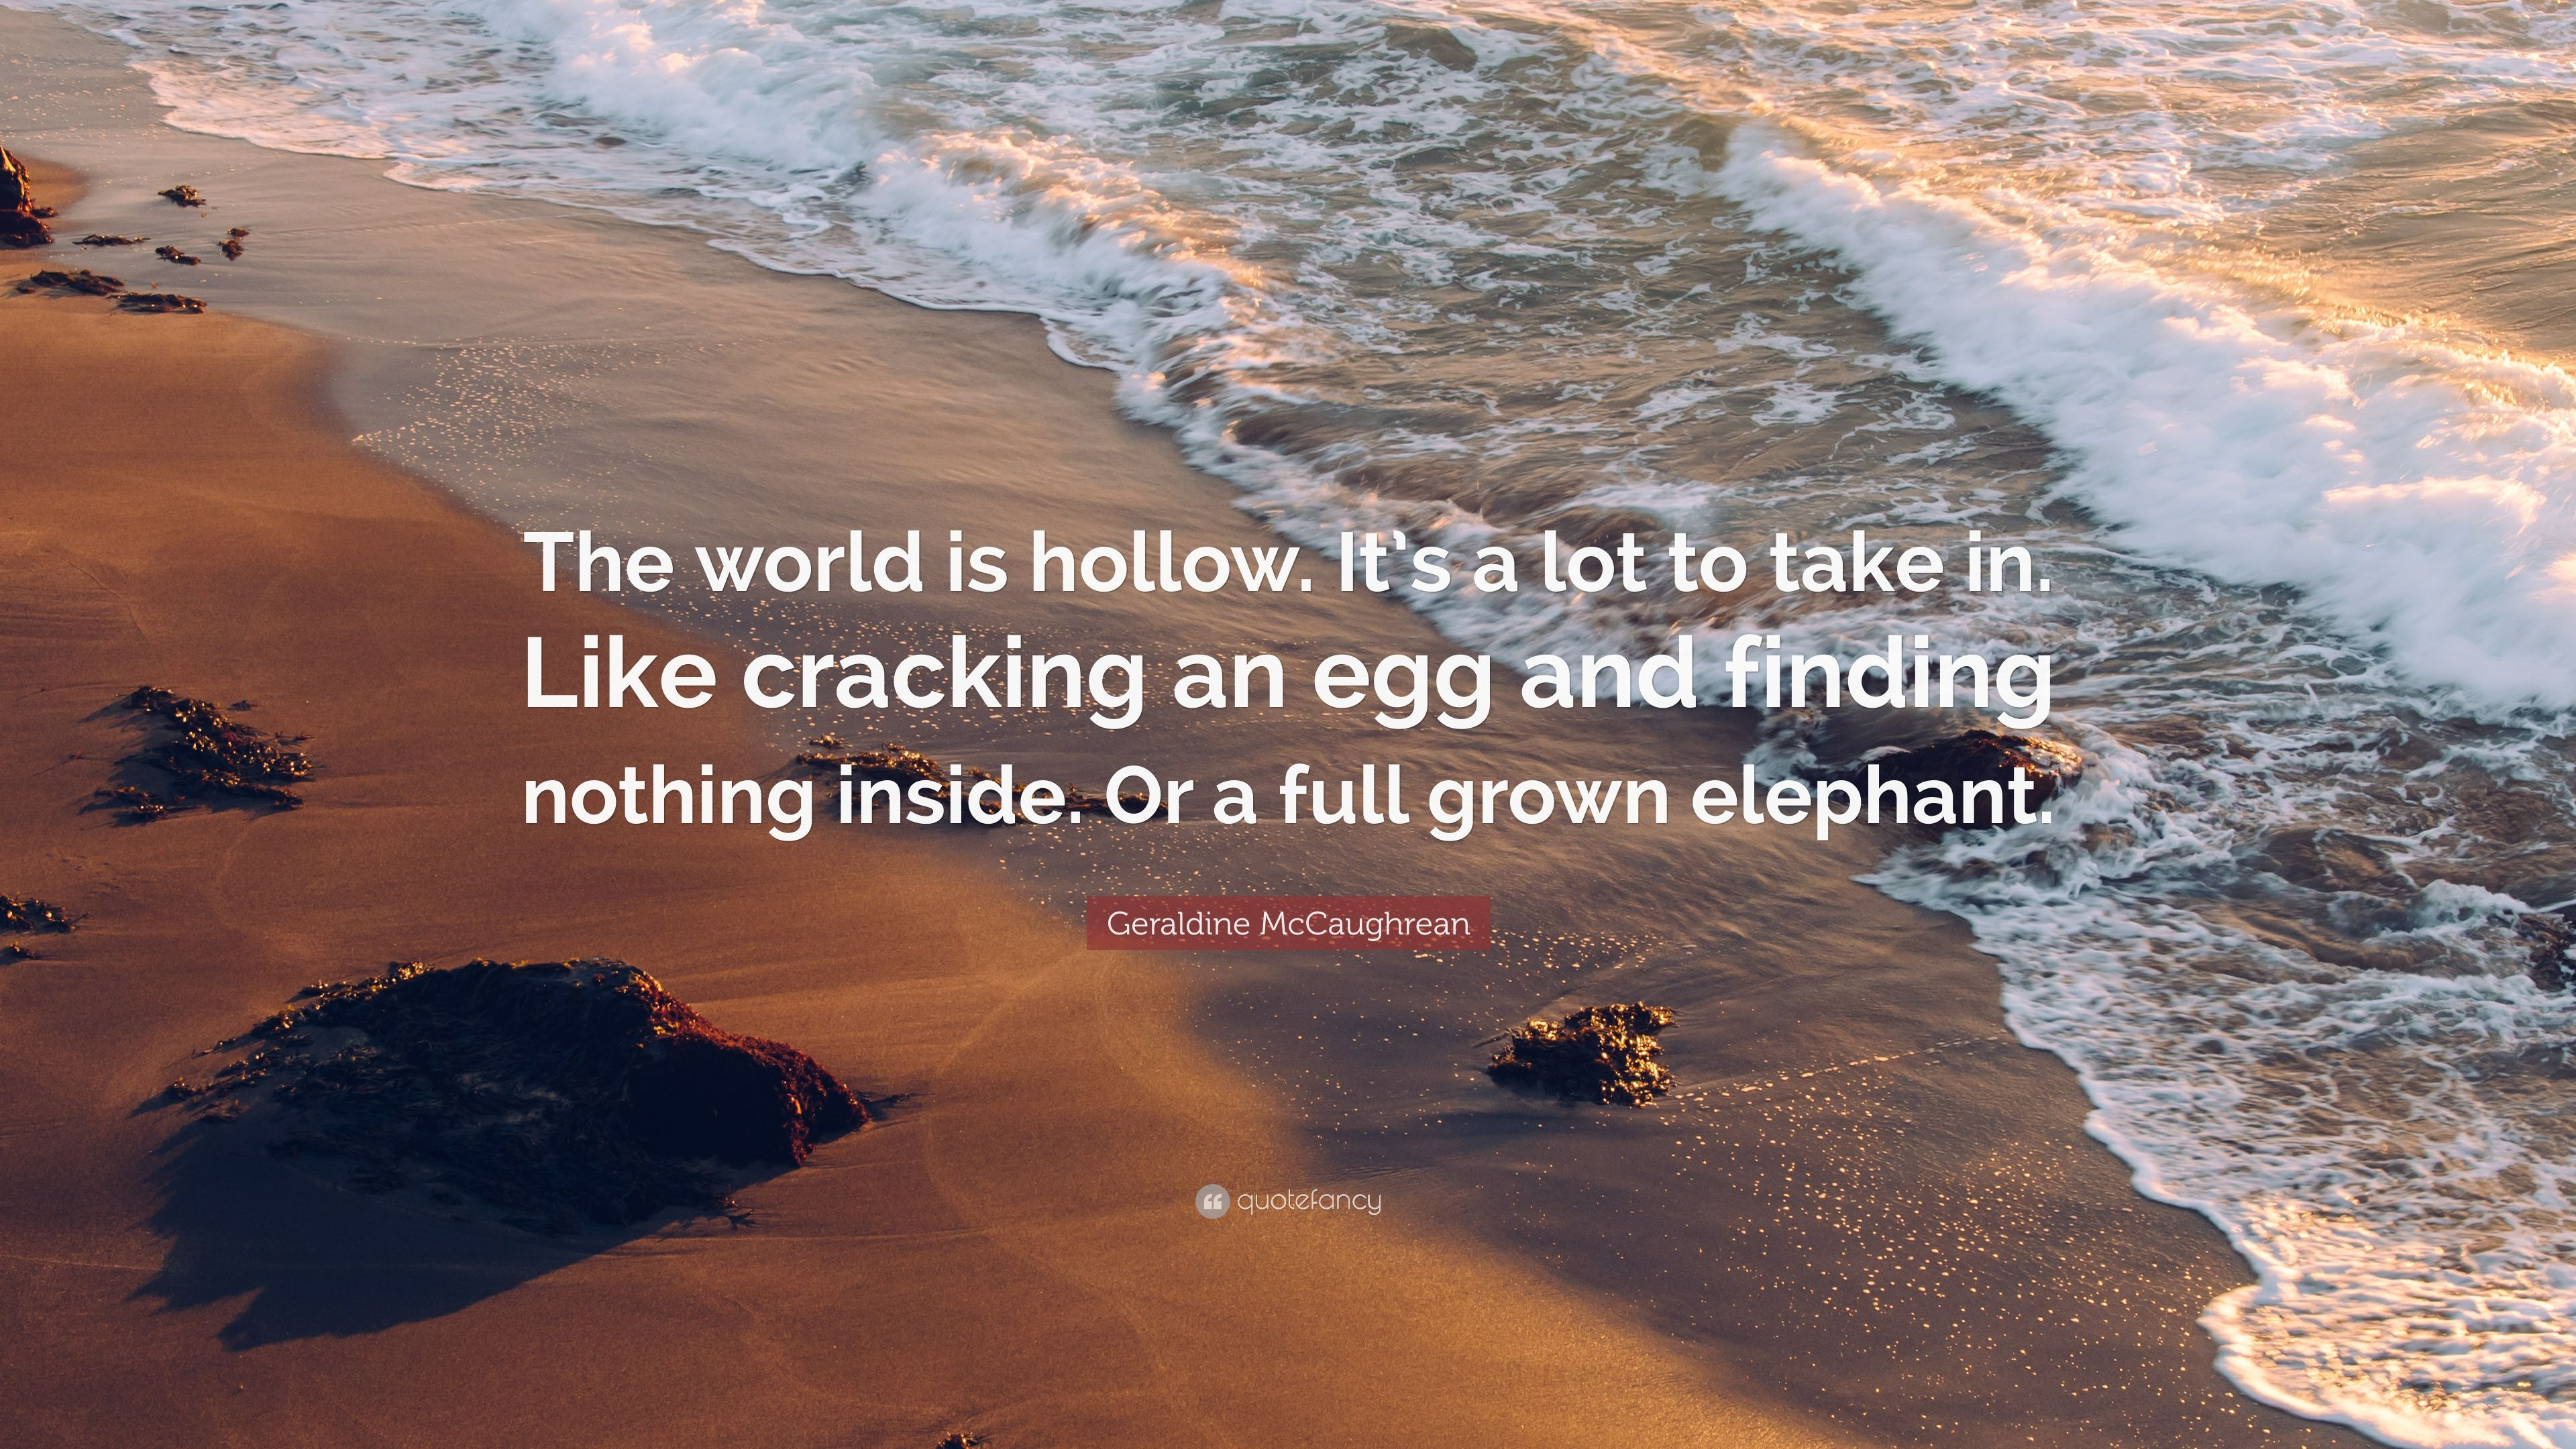 Geraldine Mccaughrean Quote The World Is Hollow It S A Lot To Take In Like Cracking An Egg And Finding Nothing Inside Or A Full Grown Elephant 7 Wallpapers Quotefancy